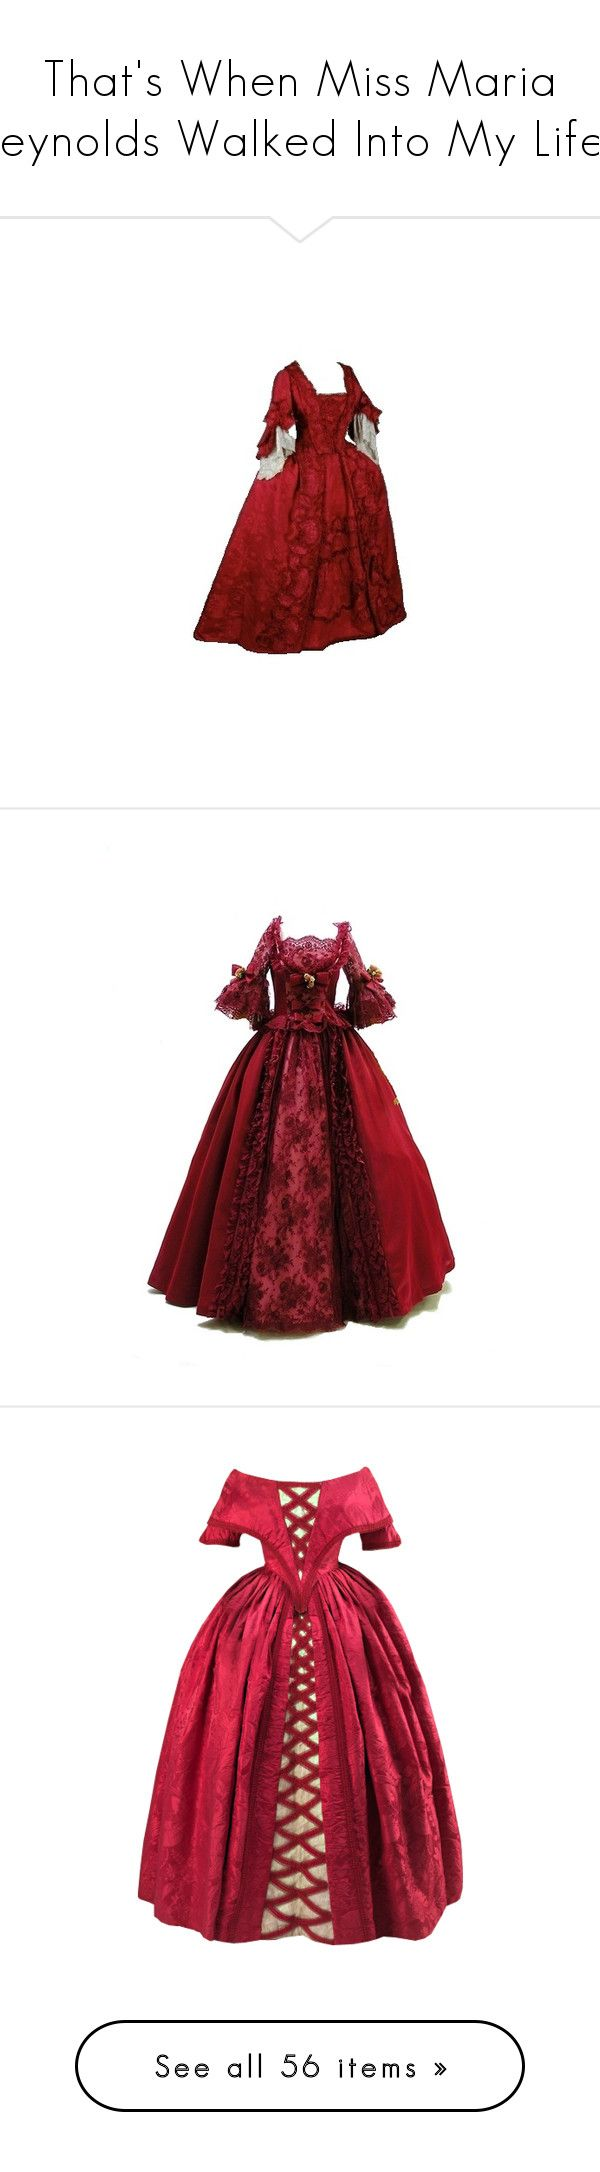 """""""That's When Miss Maria Reynolds Walked Into My Life..."""" by taylormanson ❤ liked on Polyvore featuring Hamilton, yayhamlet, mariareynolds, hamiltrash, dresses, gown, long dress, tumblr, costume and gowns"""